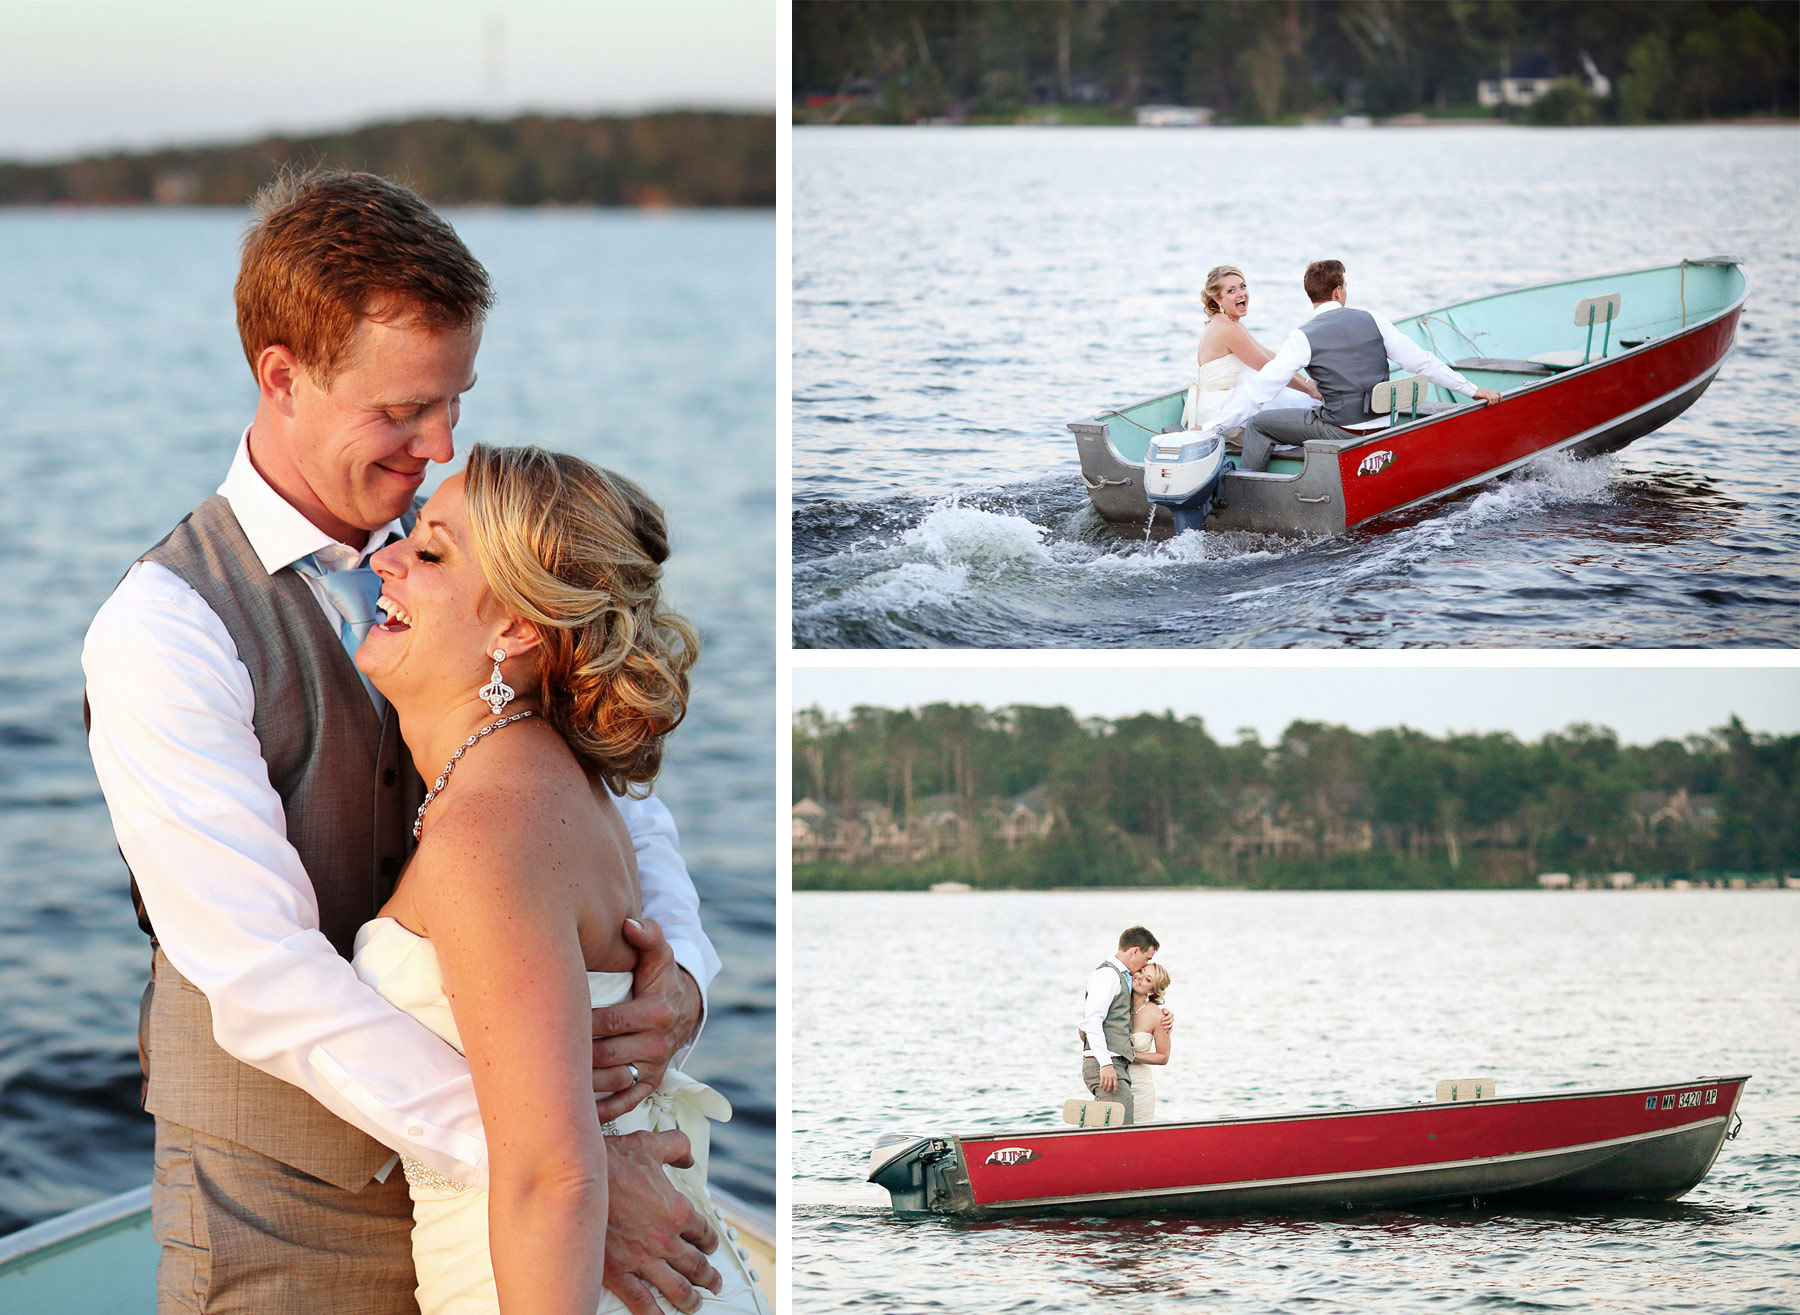 19-Brainerd-Minnesota-Wedding-Photography-by-Vick-Photography-Craguns-Resort-Lake-Boat-Lucy-&-Matt.jpg